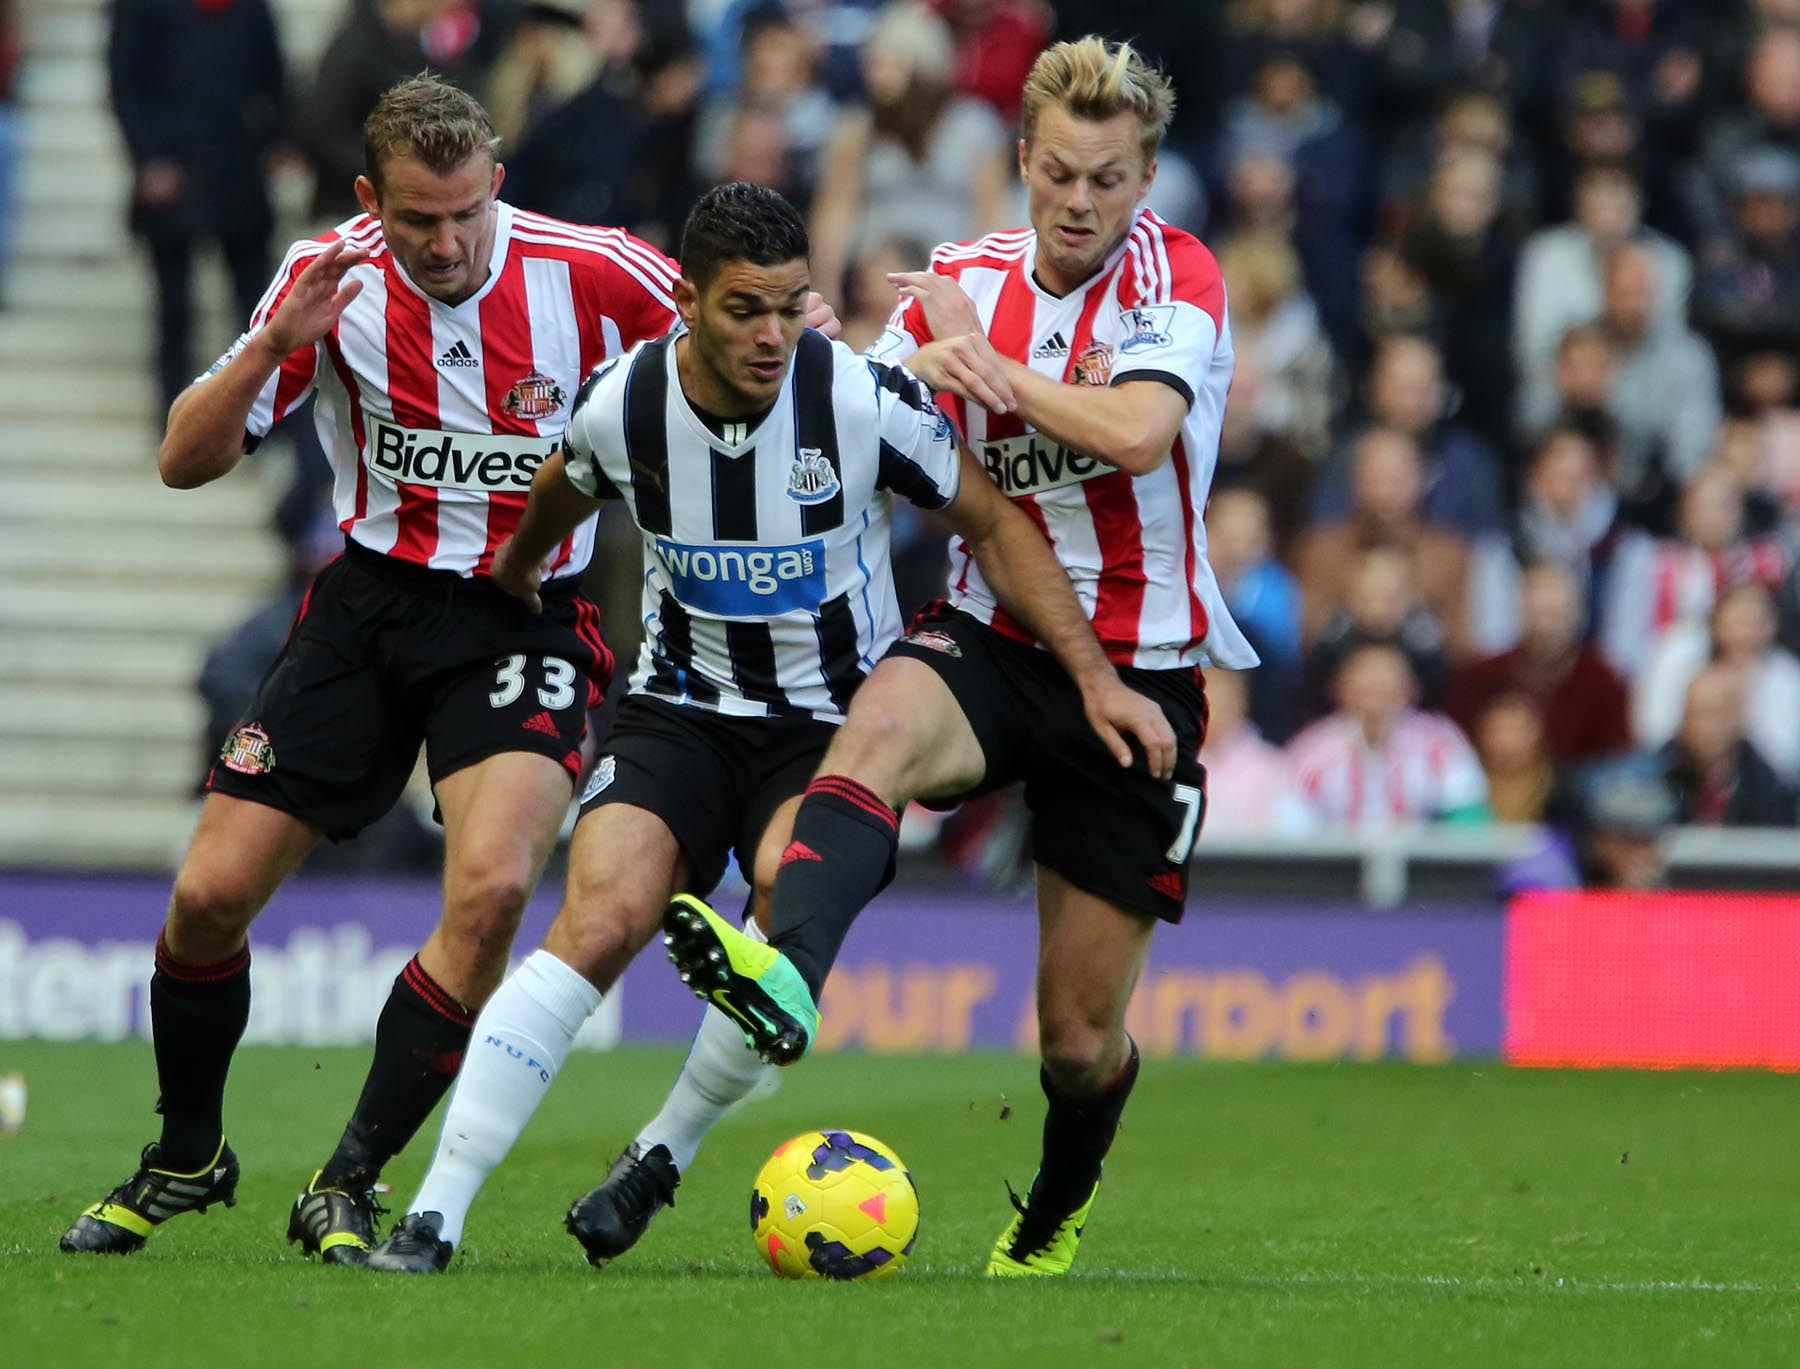 MATCH WINNER: Alan Pardew has challenged Hatem Ben Arfa to play a crucial role in today's Tyne-Wear derby with Sunderland